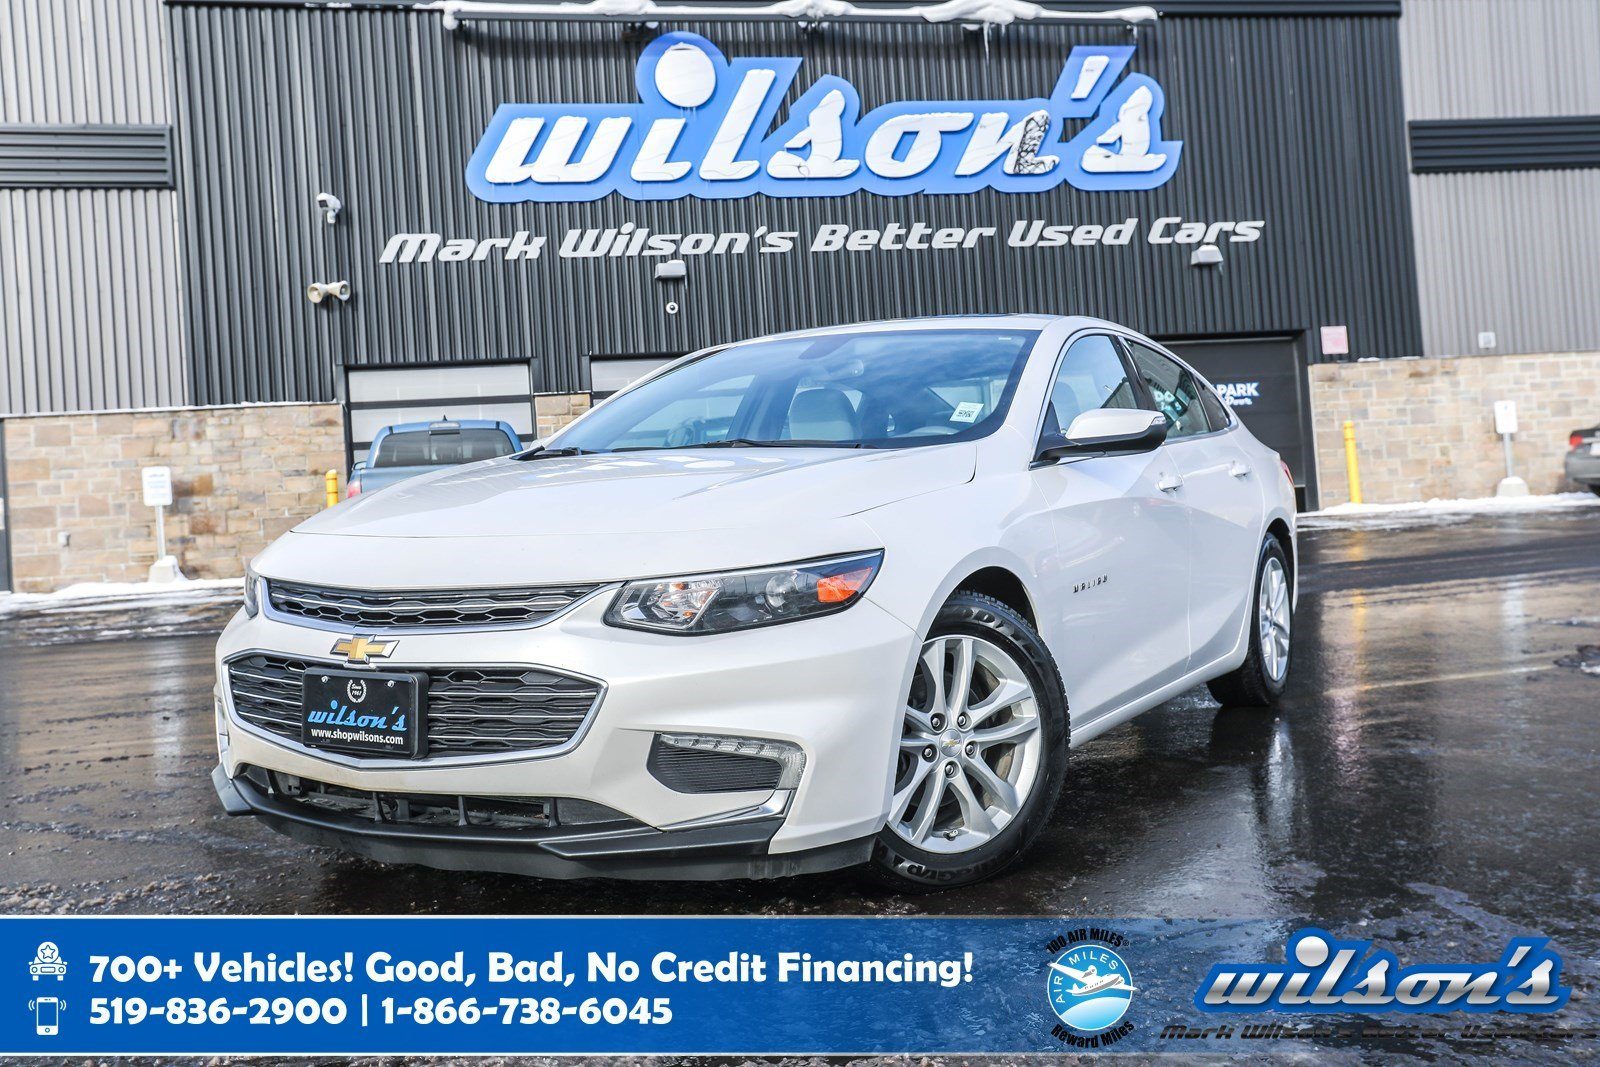 Certified Pre-Owned 2016 Chevrolet Malibu LT, Sunroof, Wireless Charging, Heated Mirrors, Power Seat, Remote Start and more!